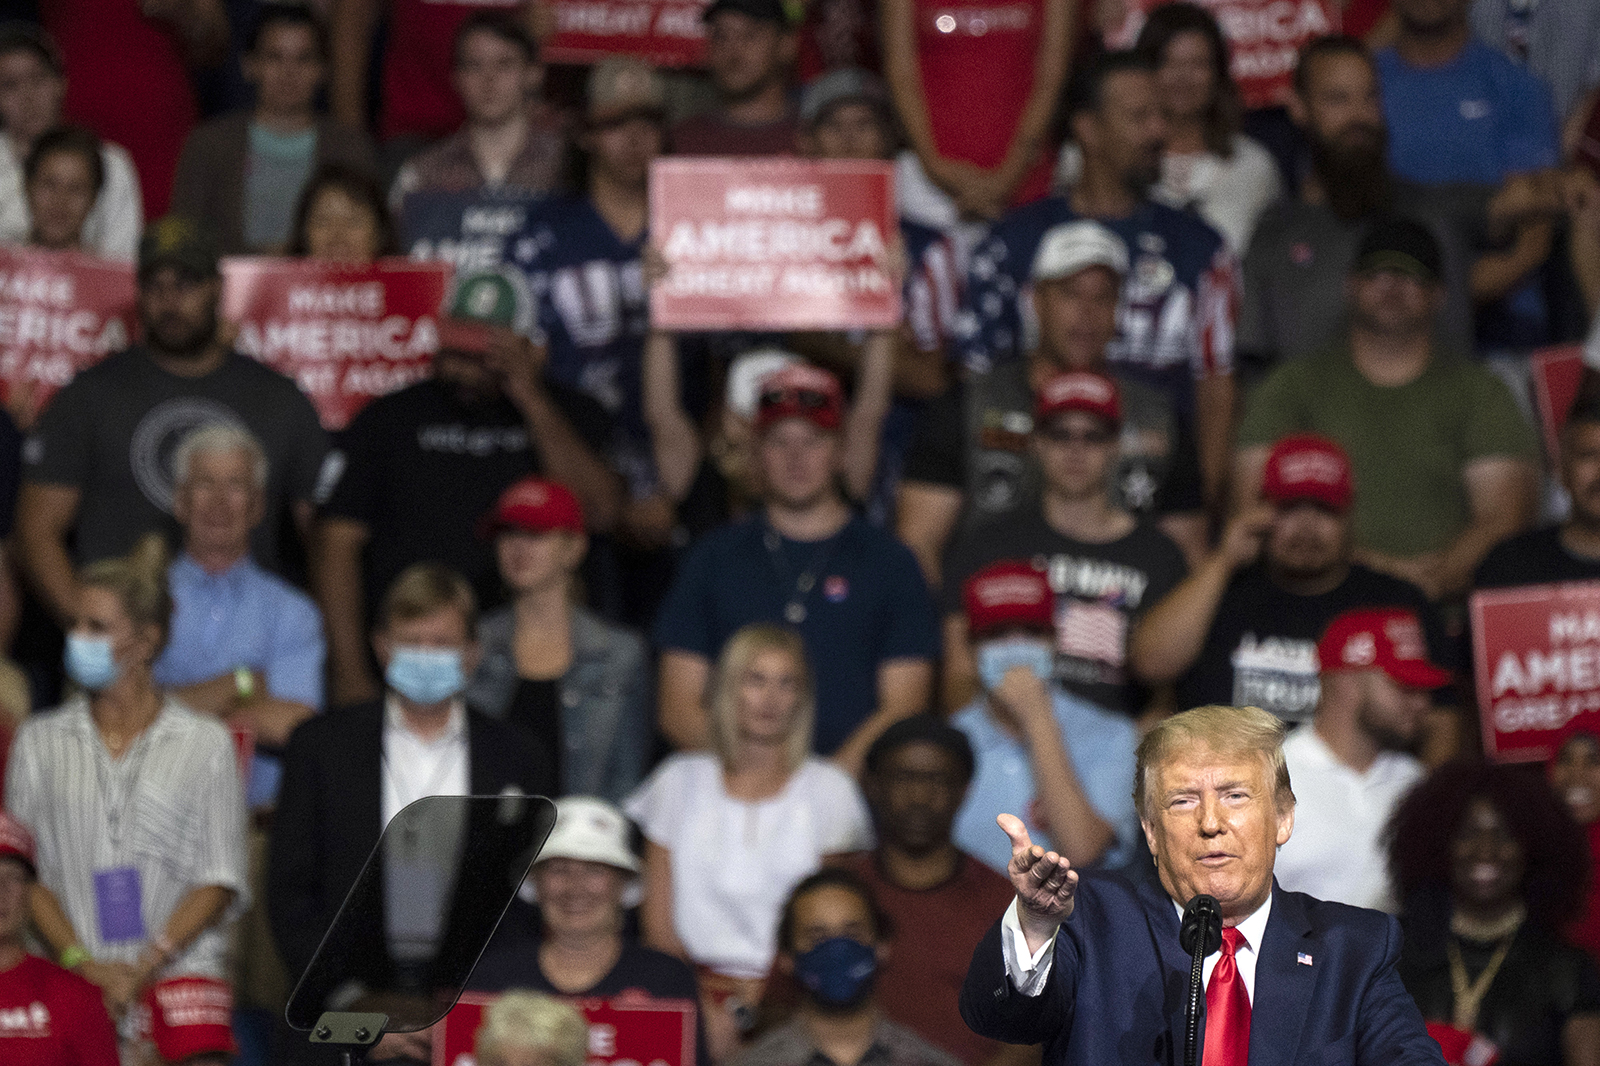 President Donald Trump speaks during a rally in Tulsa, Oklahoma on June 20.